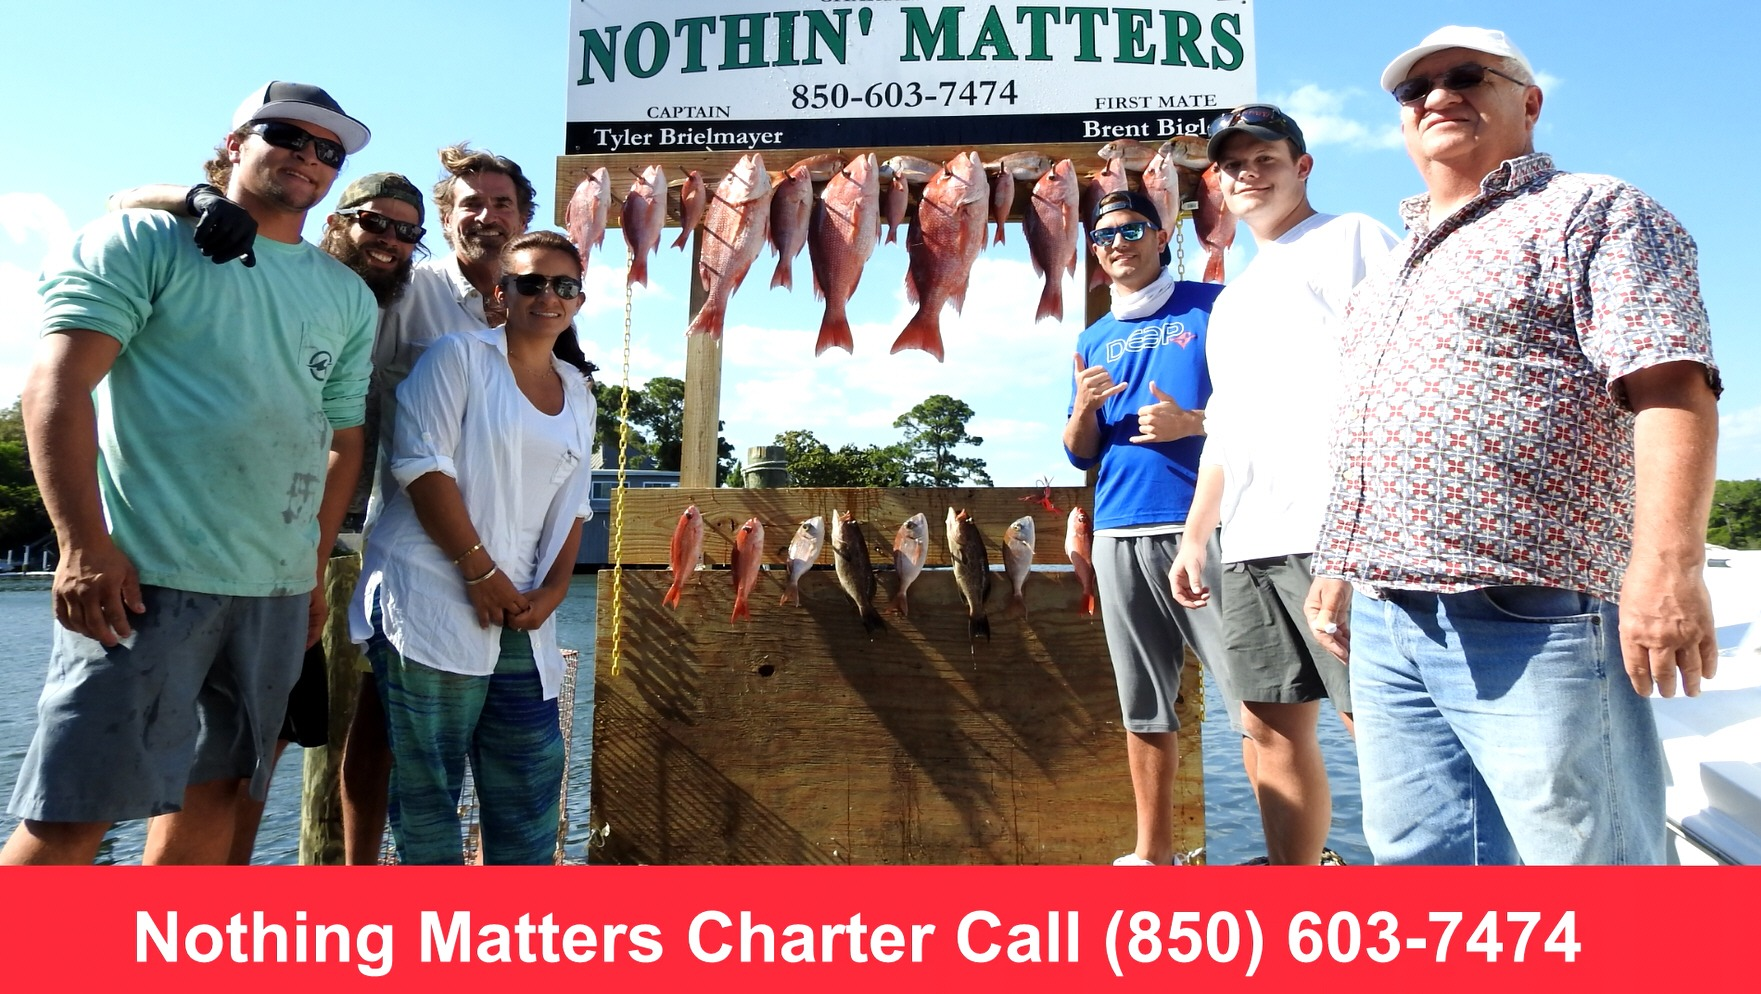 Nothing matters fishing charters call 850 603 7474 for Grayton beach fishing charters